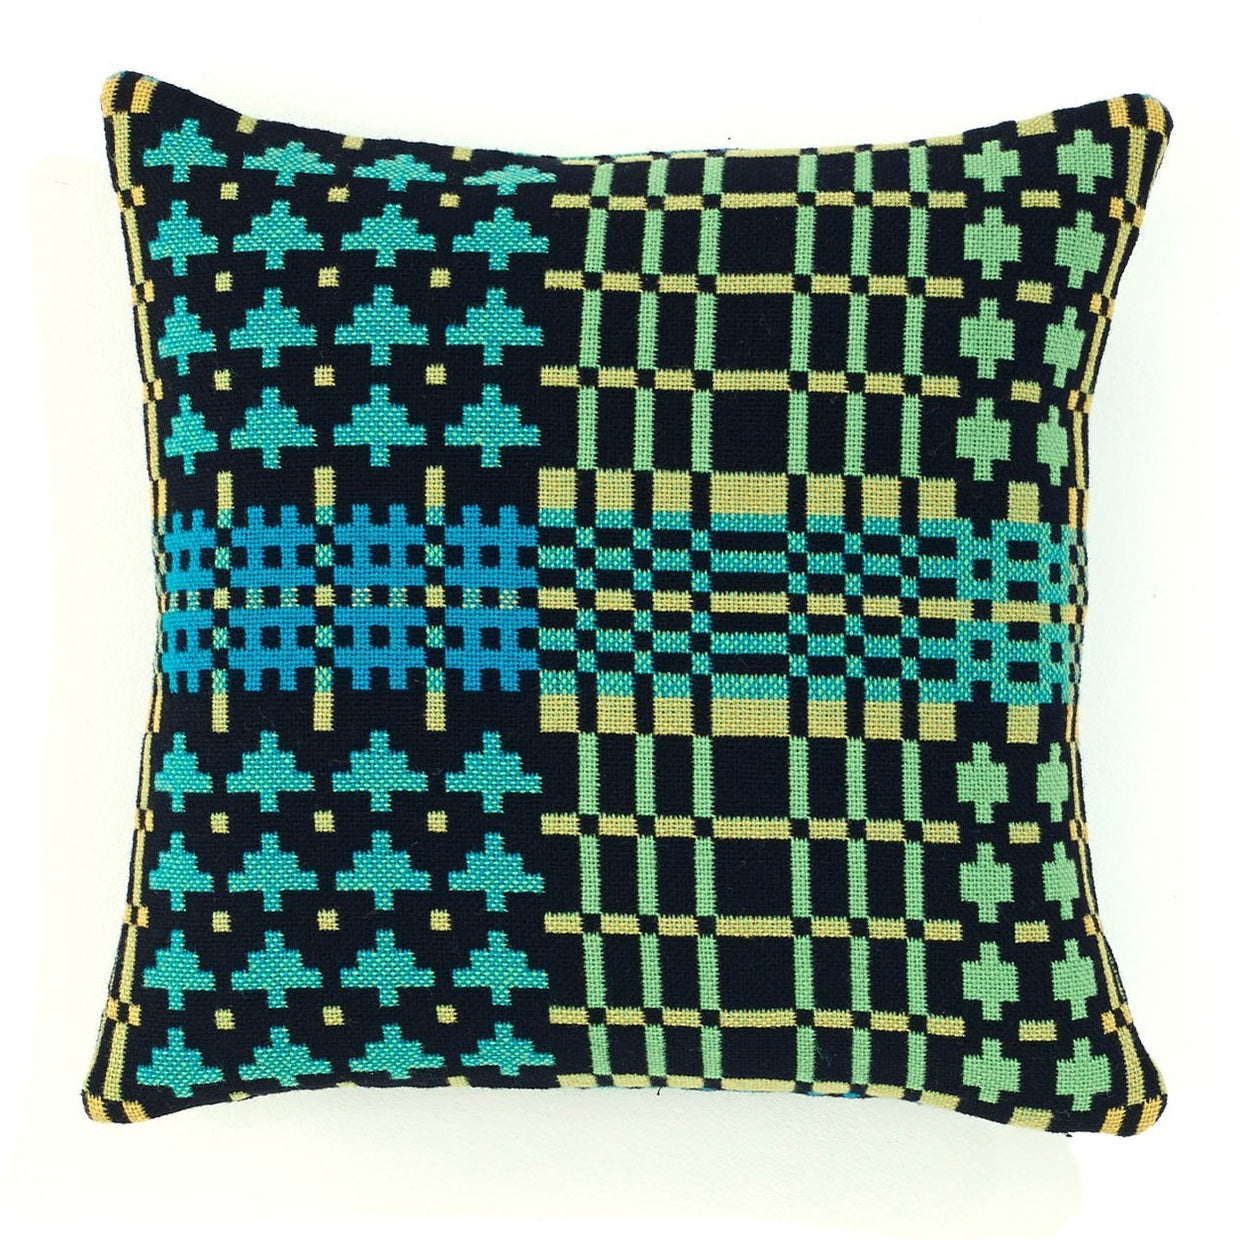 Field Day cushion - black forest